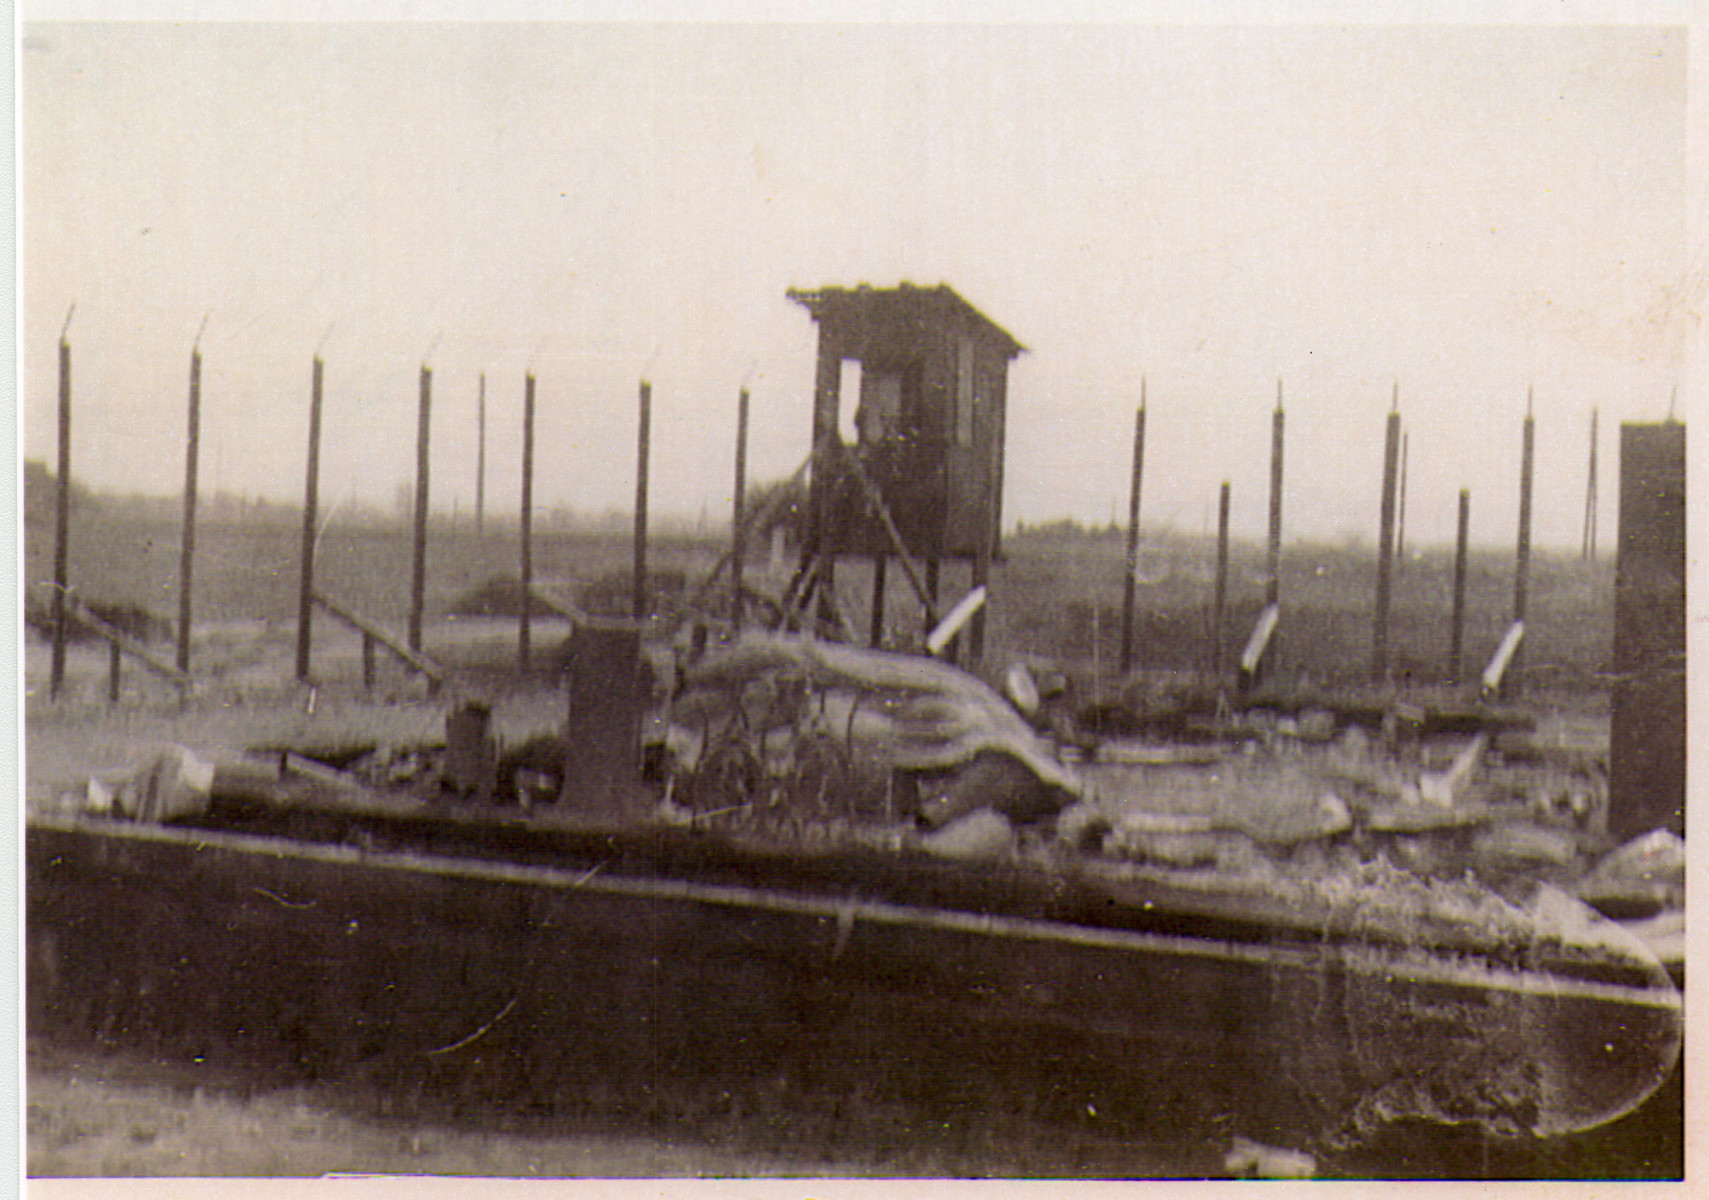 View of the Hanover-Ahlem concentration camp after liberation.